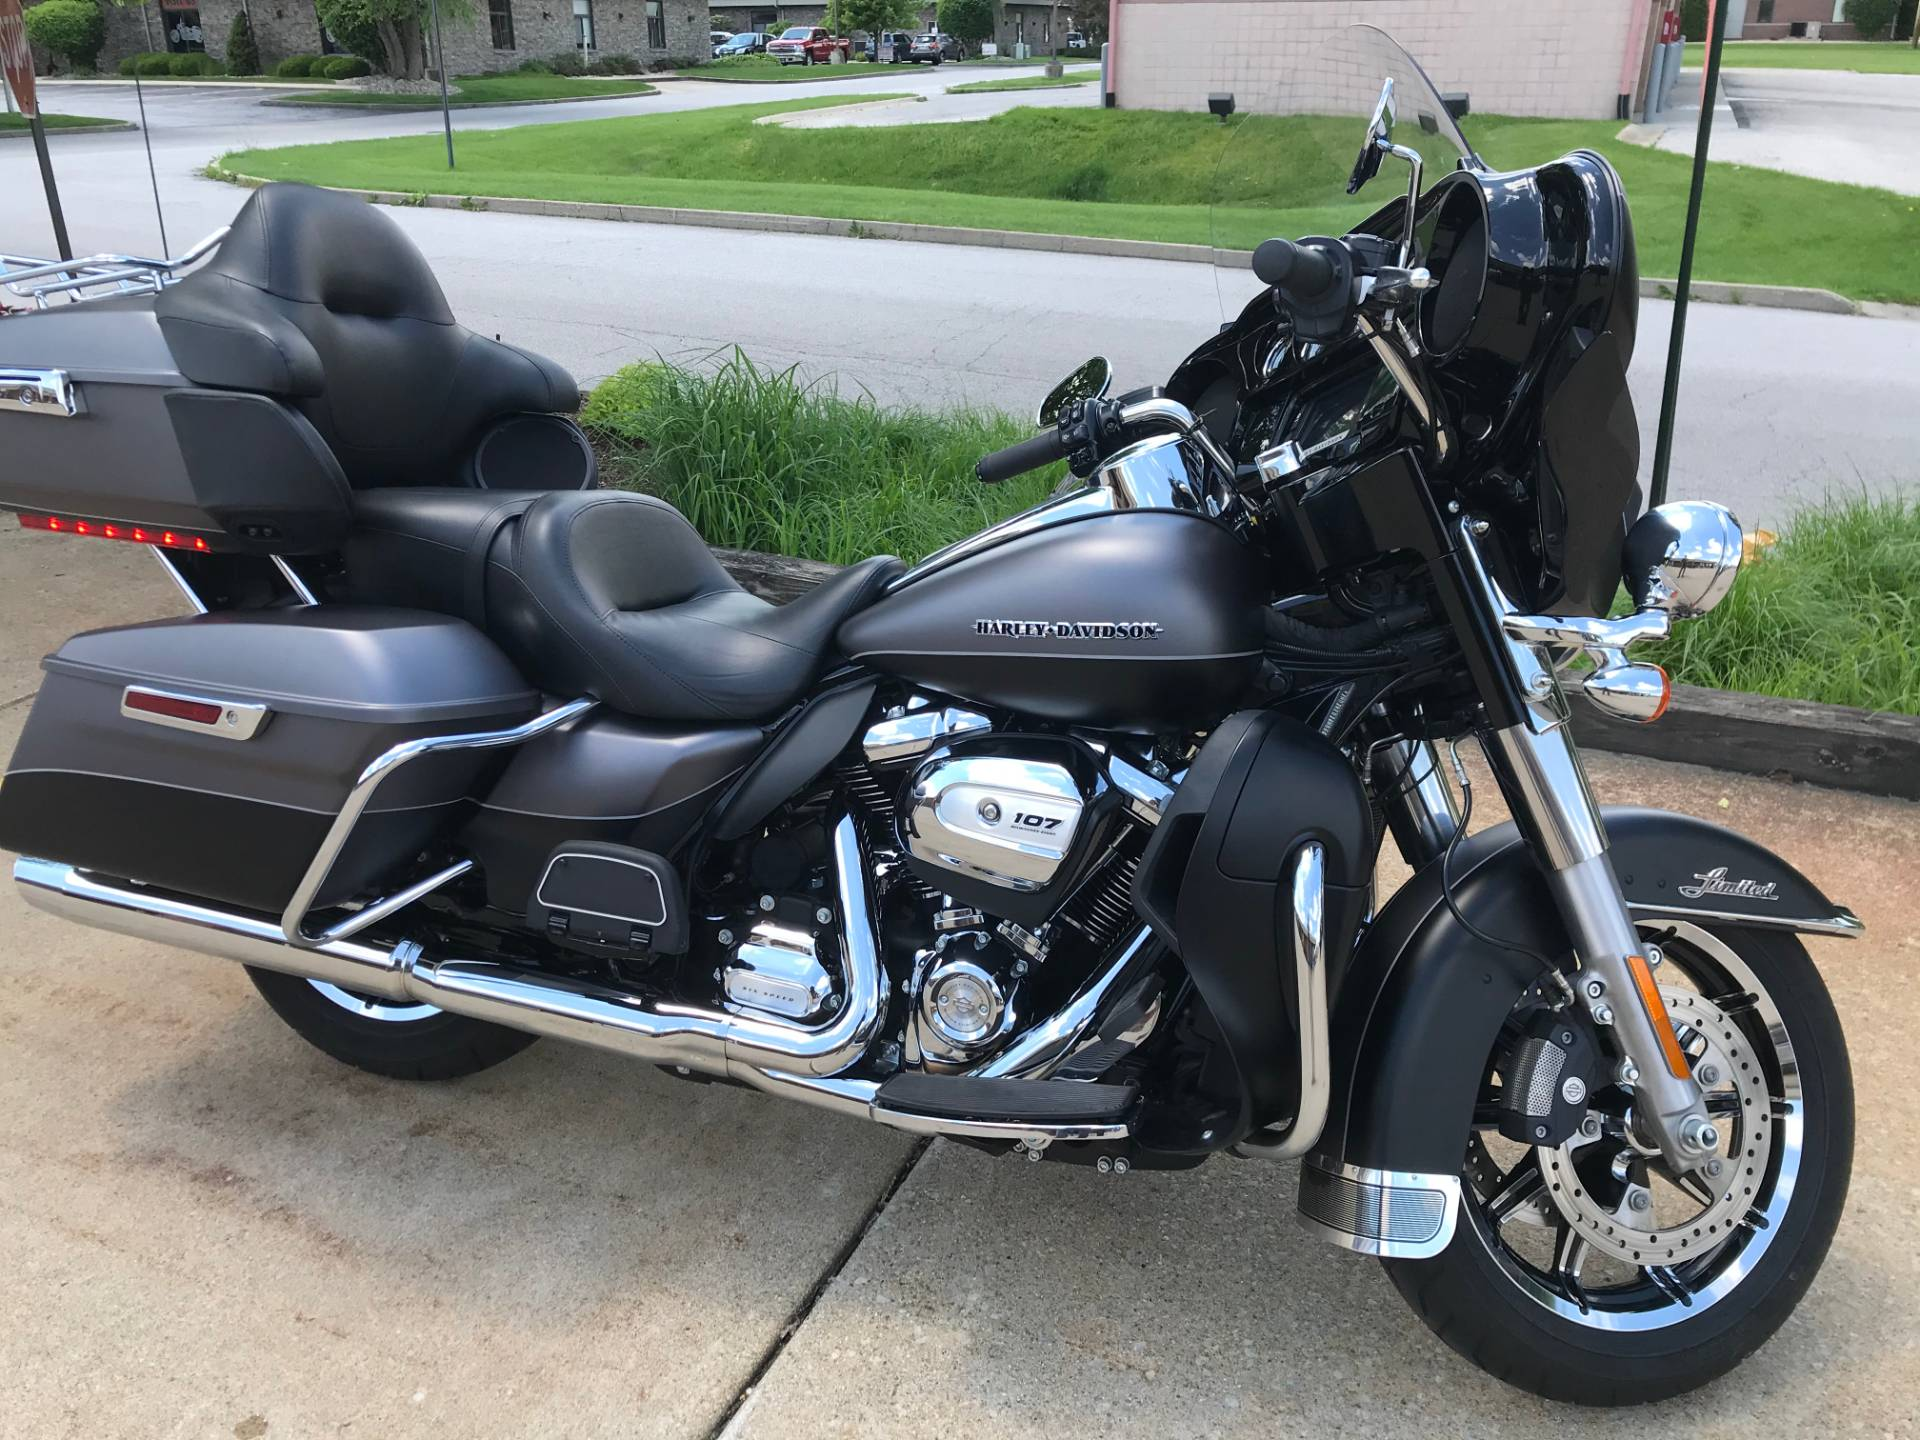 2017 Harley-Davidson Ultra Limited in Valparaiso, Indiana - Photo 2